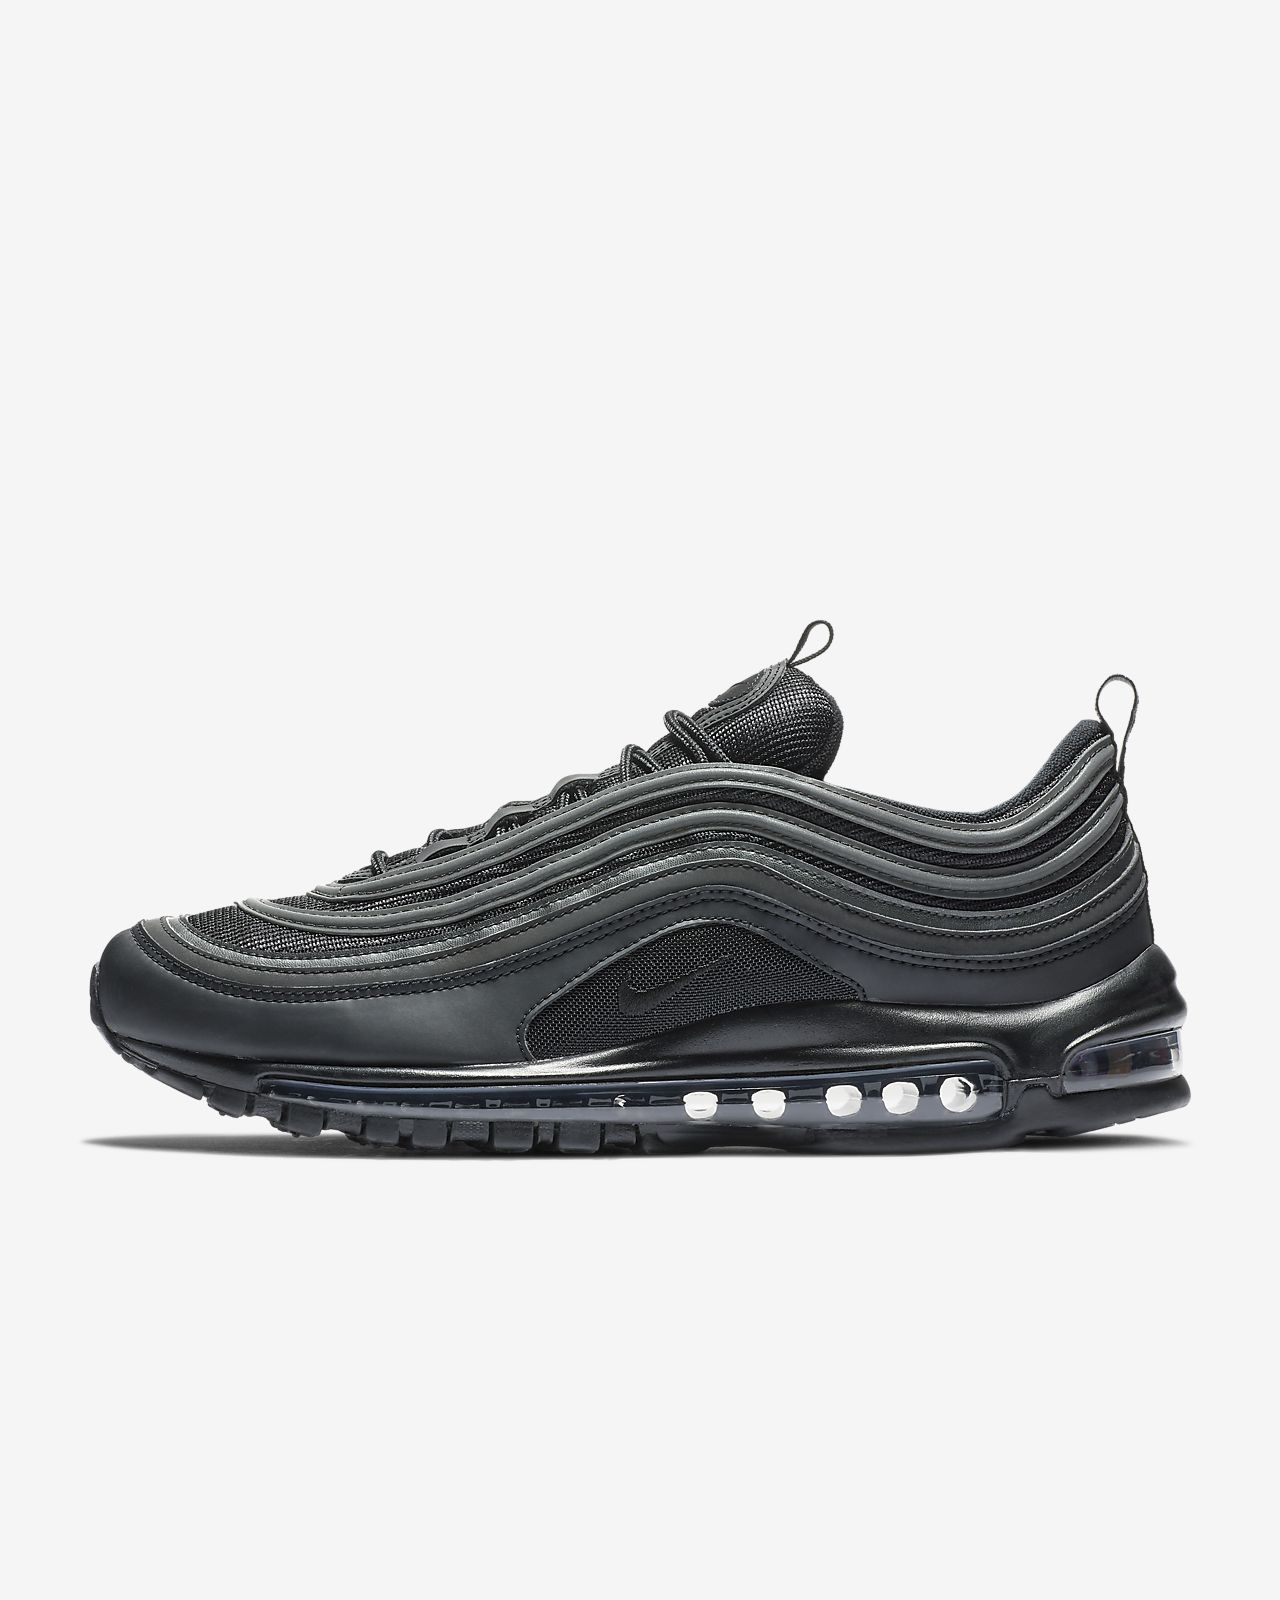 Nike Air Max 97 Total Black